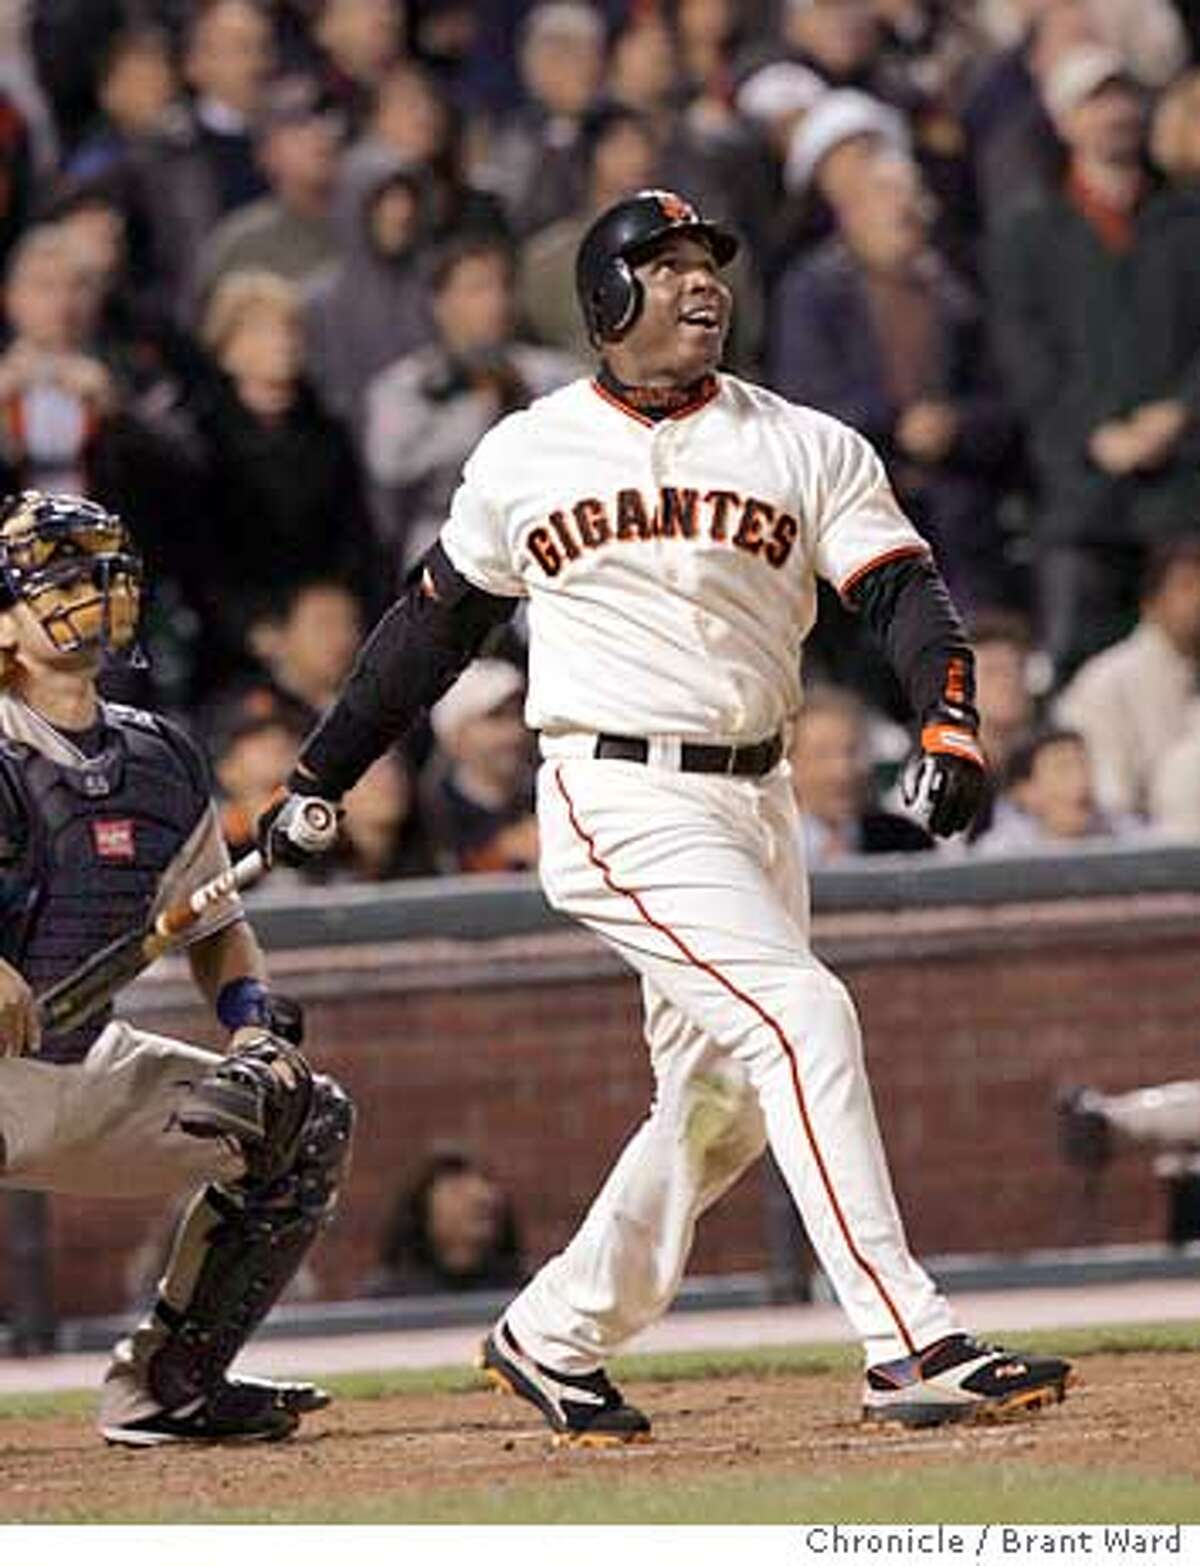 Bonds second at bat is a fly to center field to end the 3rd inning...he smiled as he watched. Barry Bonds returned to action Monday night against the division-leading San Diego Padres. Brant Ward 9/12/05